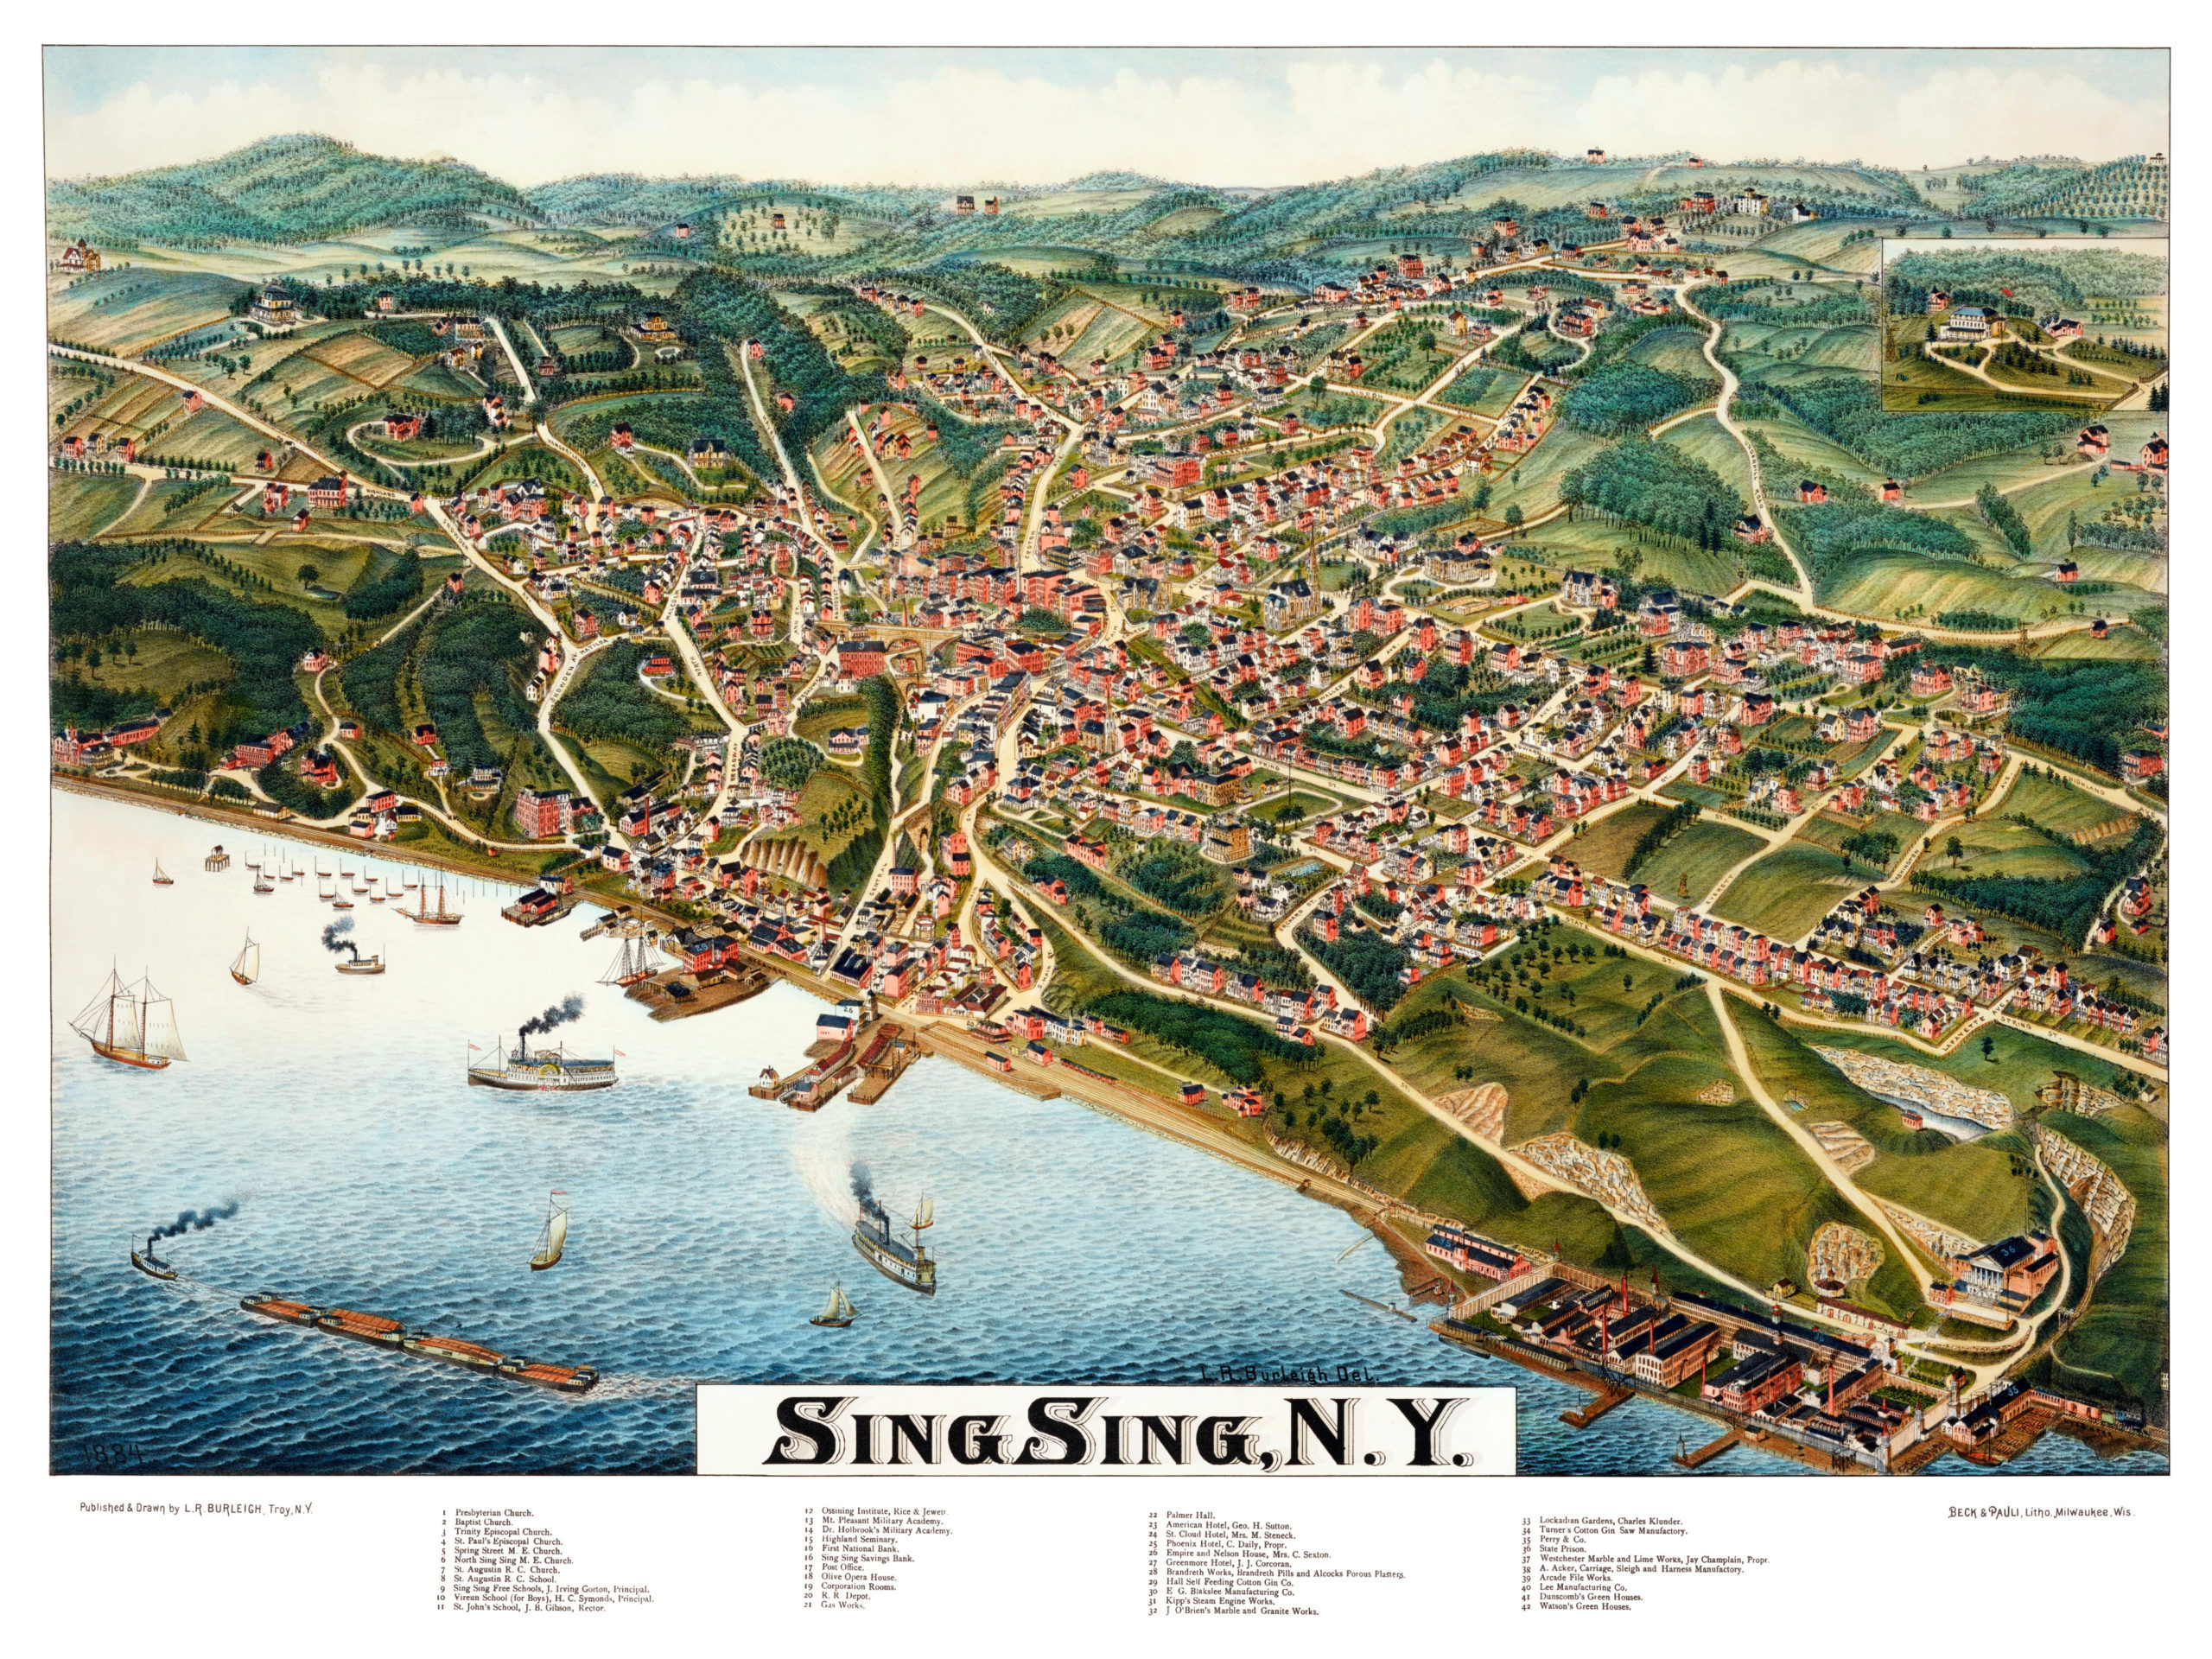 Beautifully restored map of ossining sing sing ny from 1884 knowol reproductions of the restored map are available here gumiabroncs Choice Image